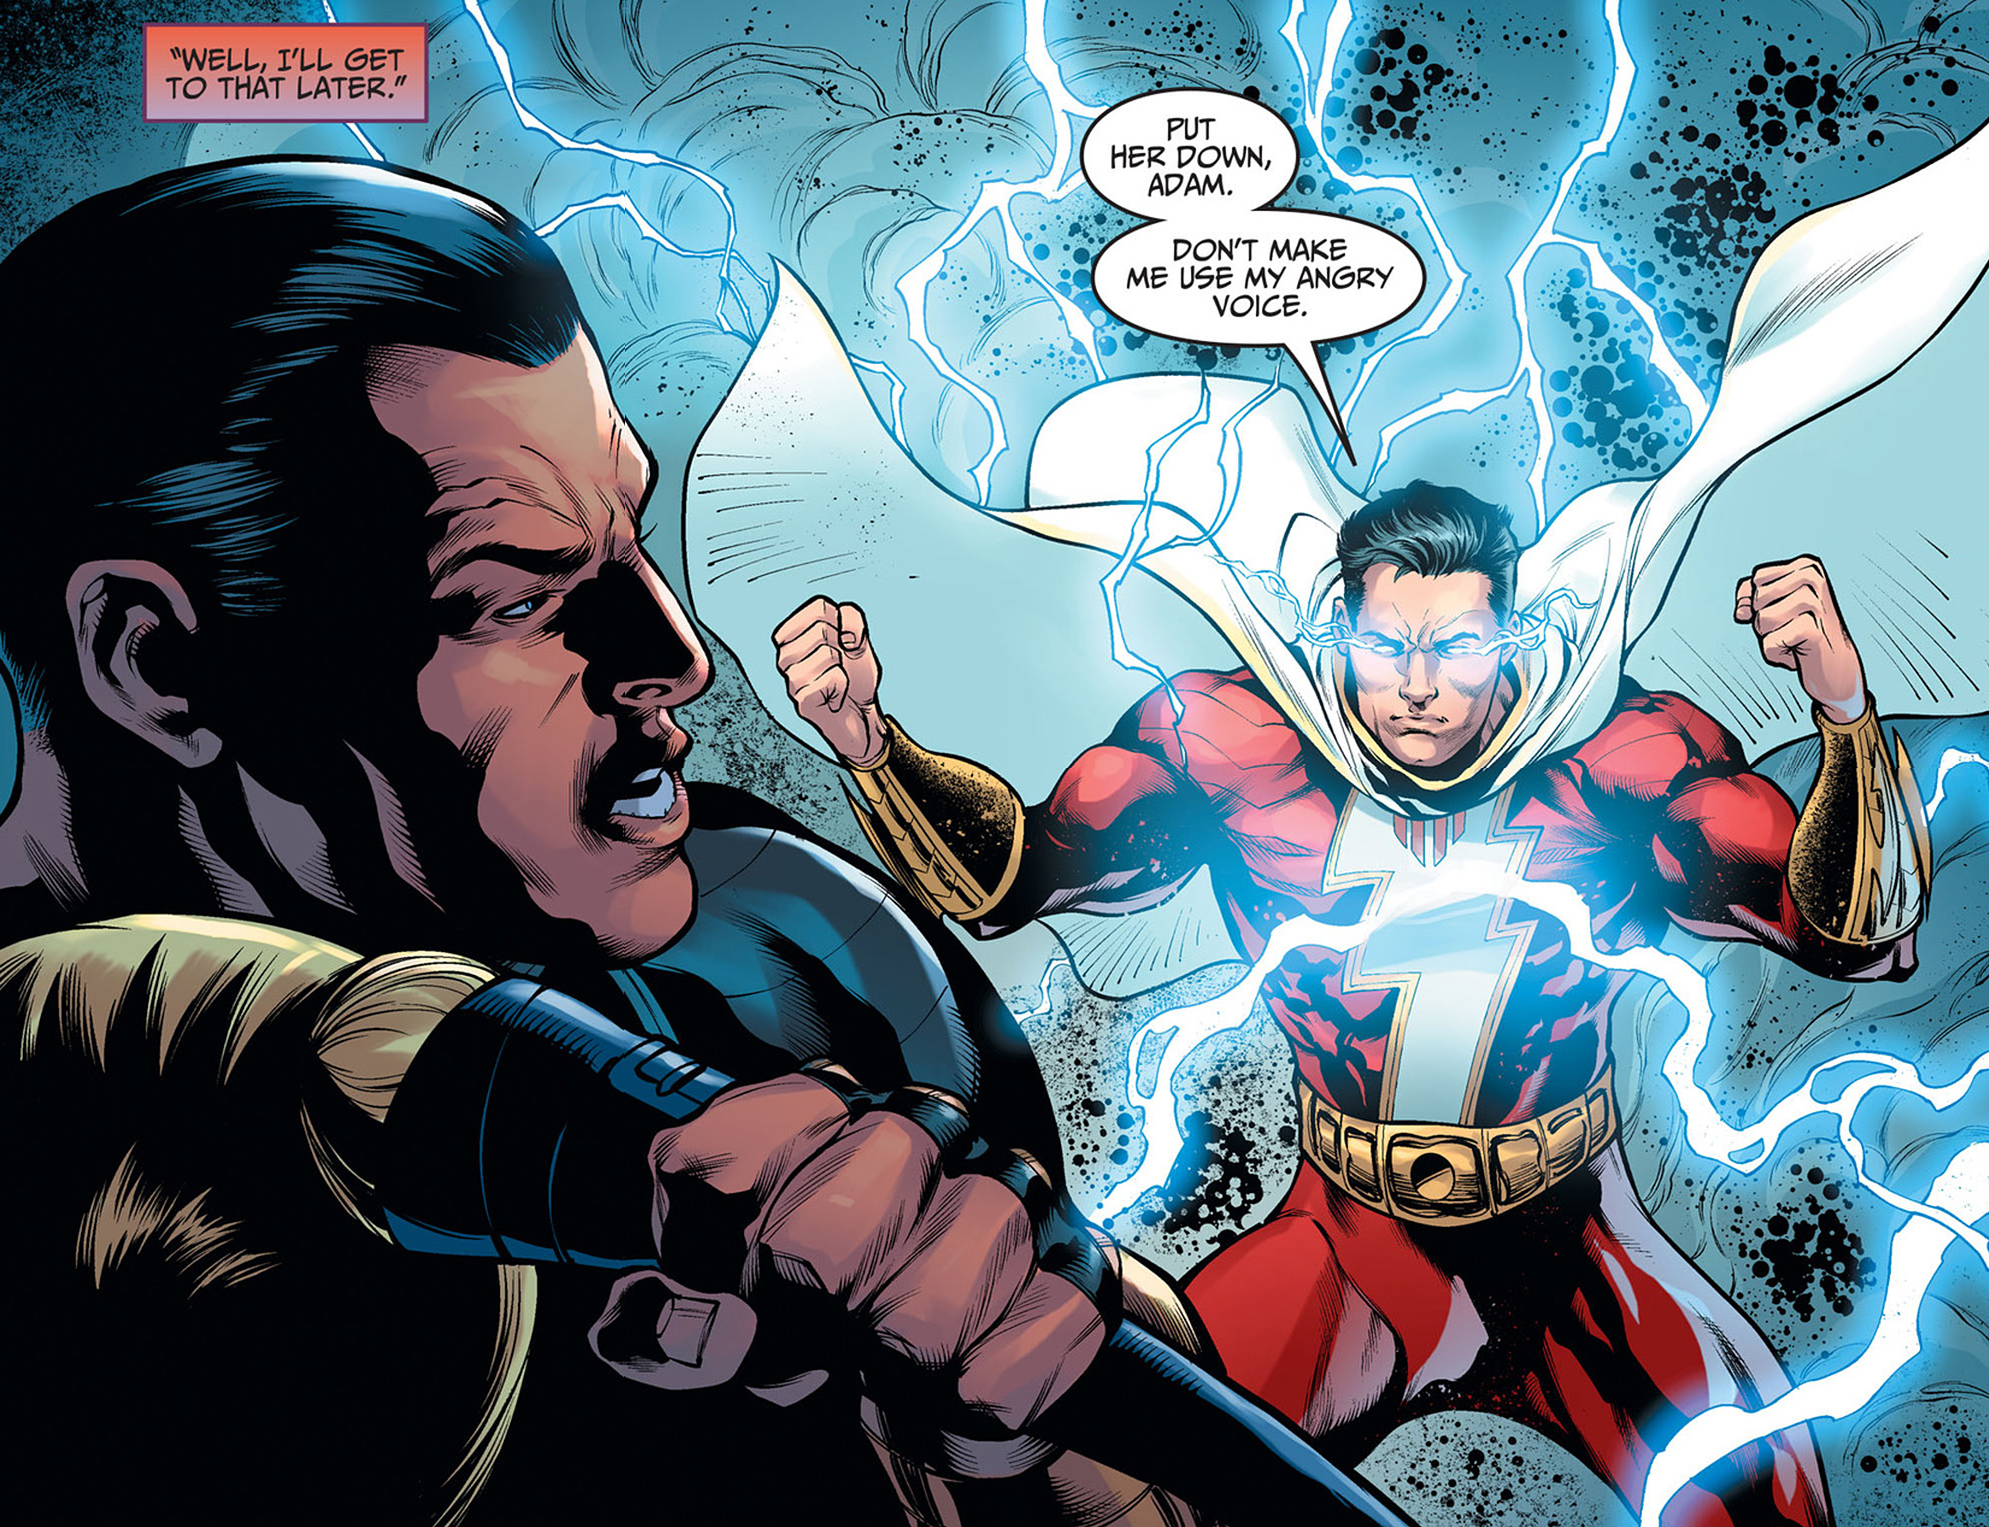 https://comicnewbies.files.wordpress.com/2017/01/shazam-vs-black-adam-injustice-gods-among-us-1.jpg